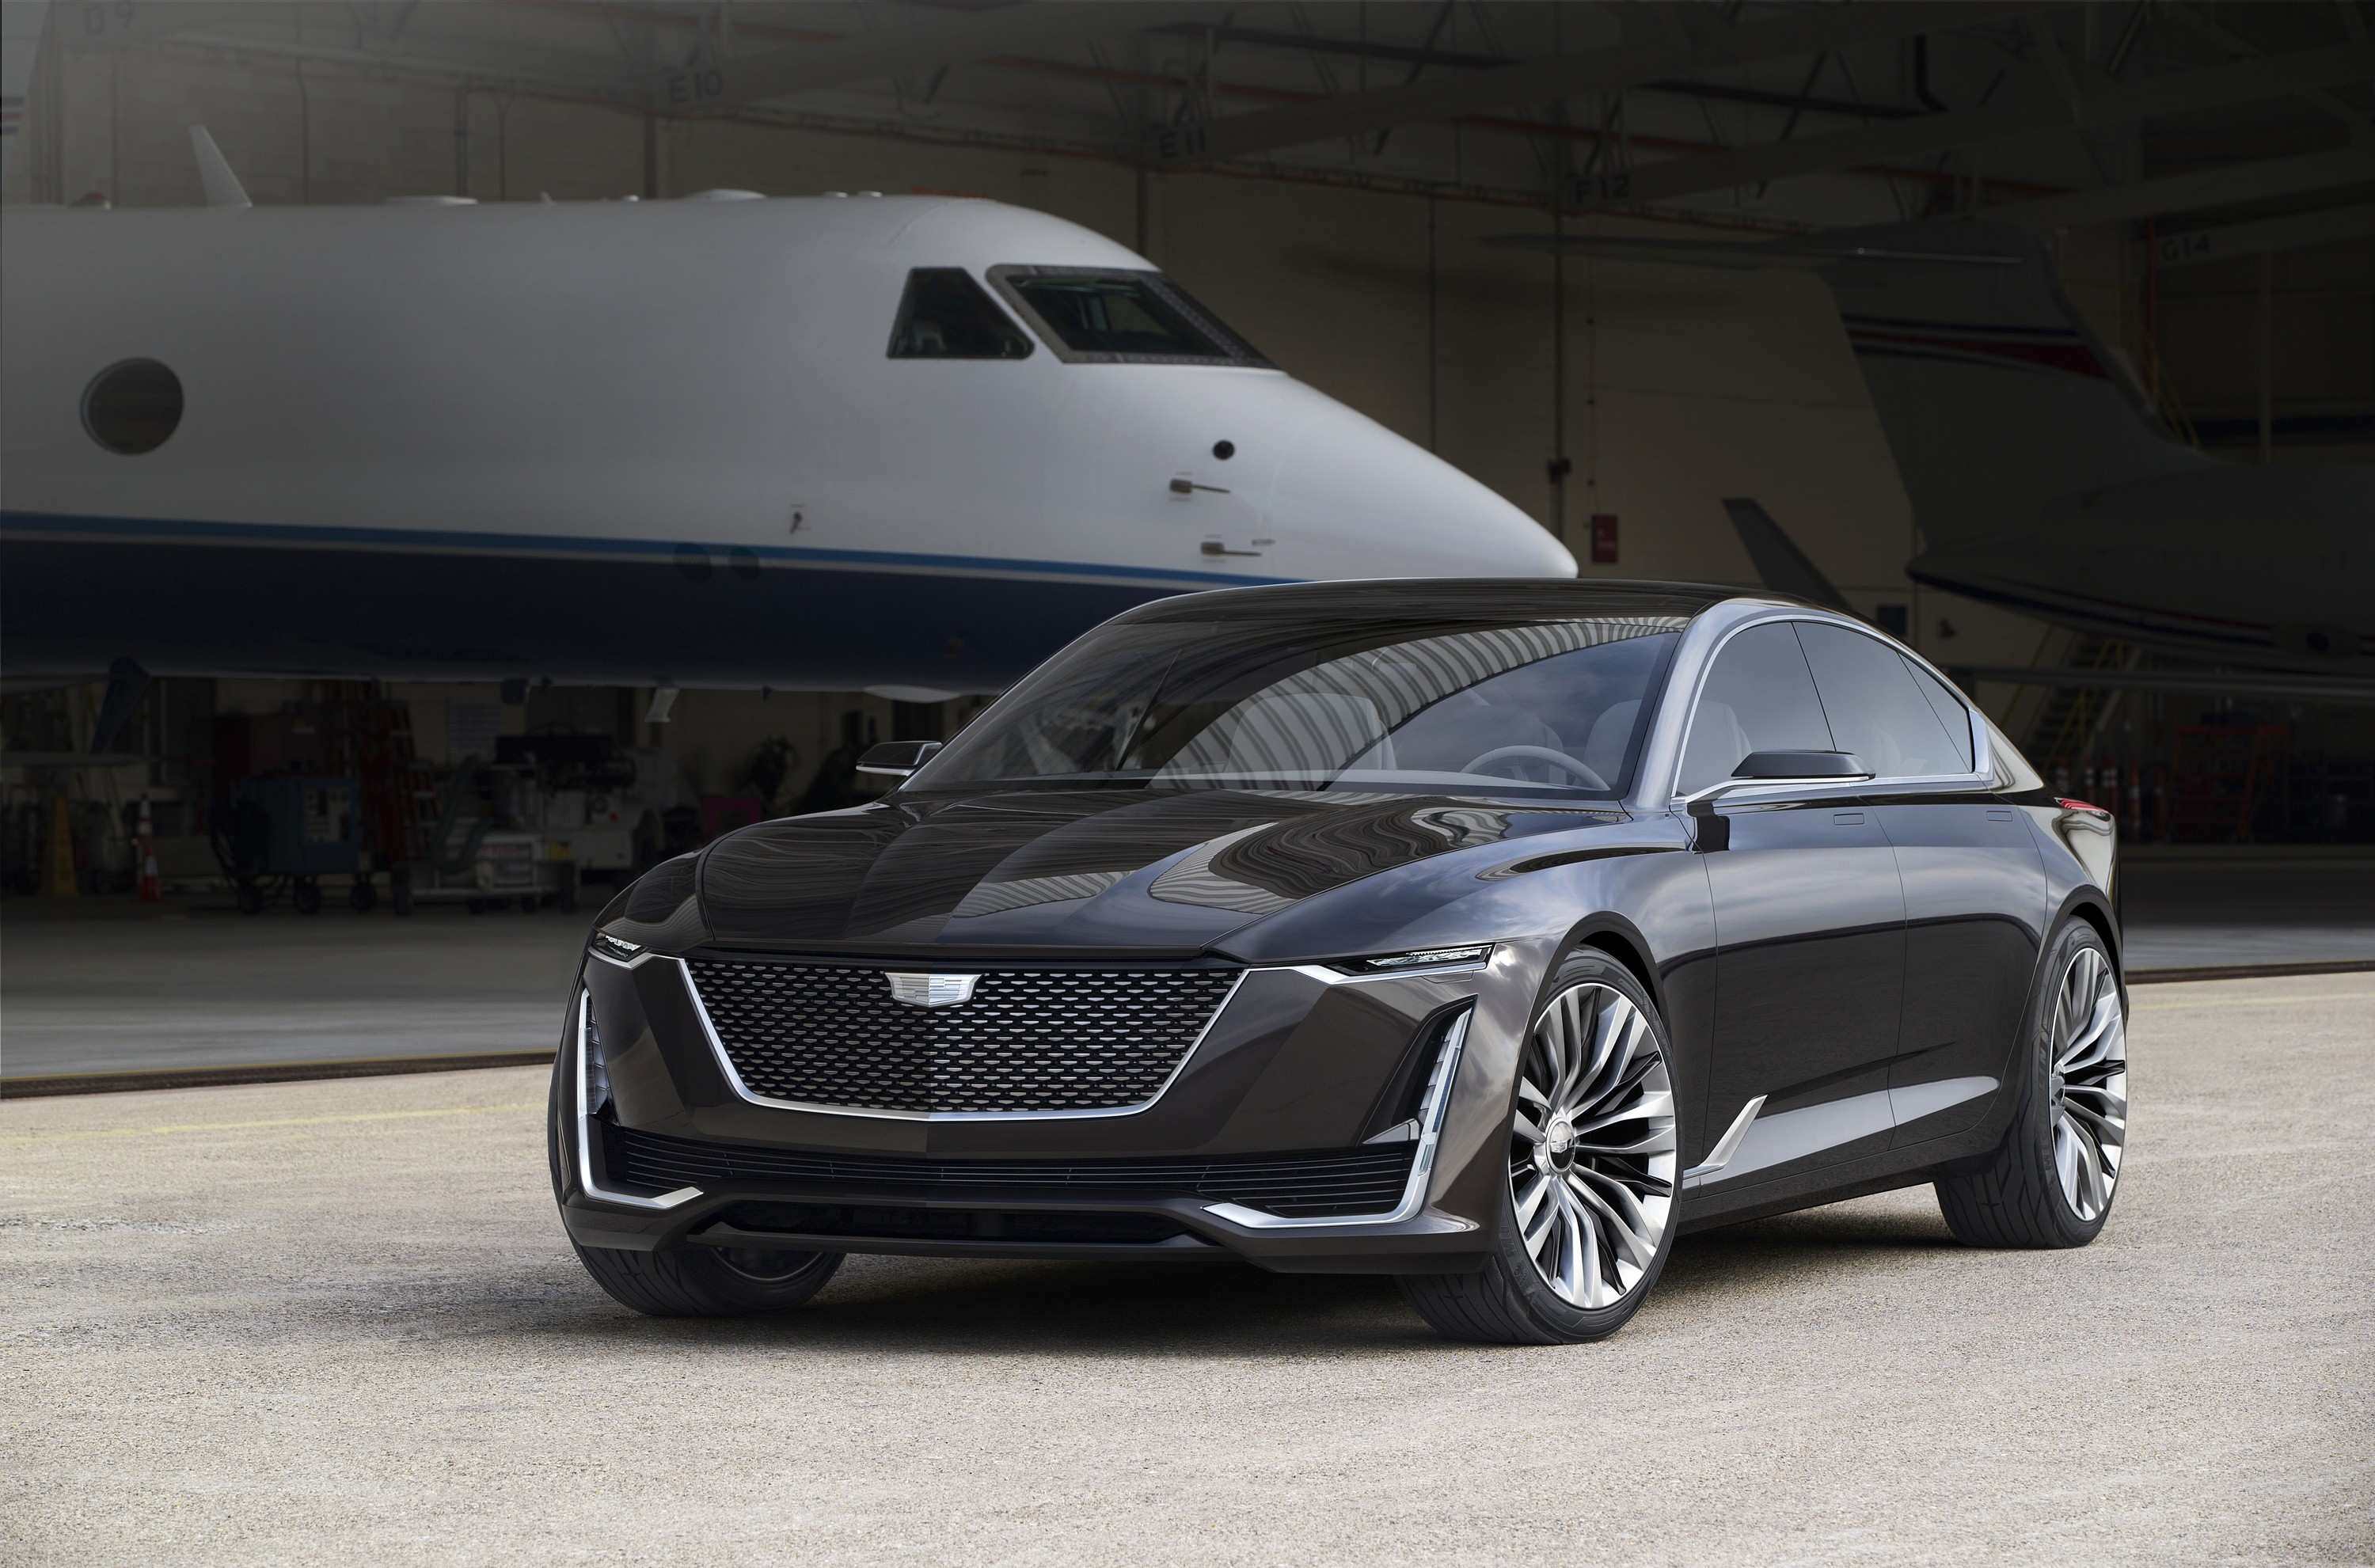 99 Gallery of New Cadillac Models For 2020 Engine by New Cadillac Models For 2020